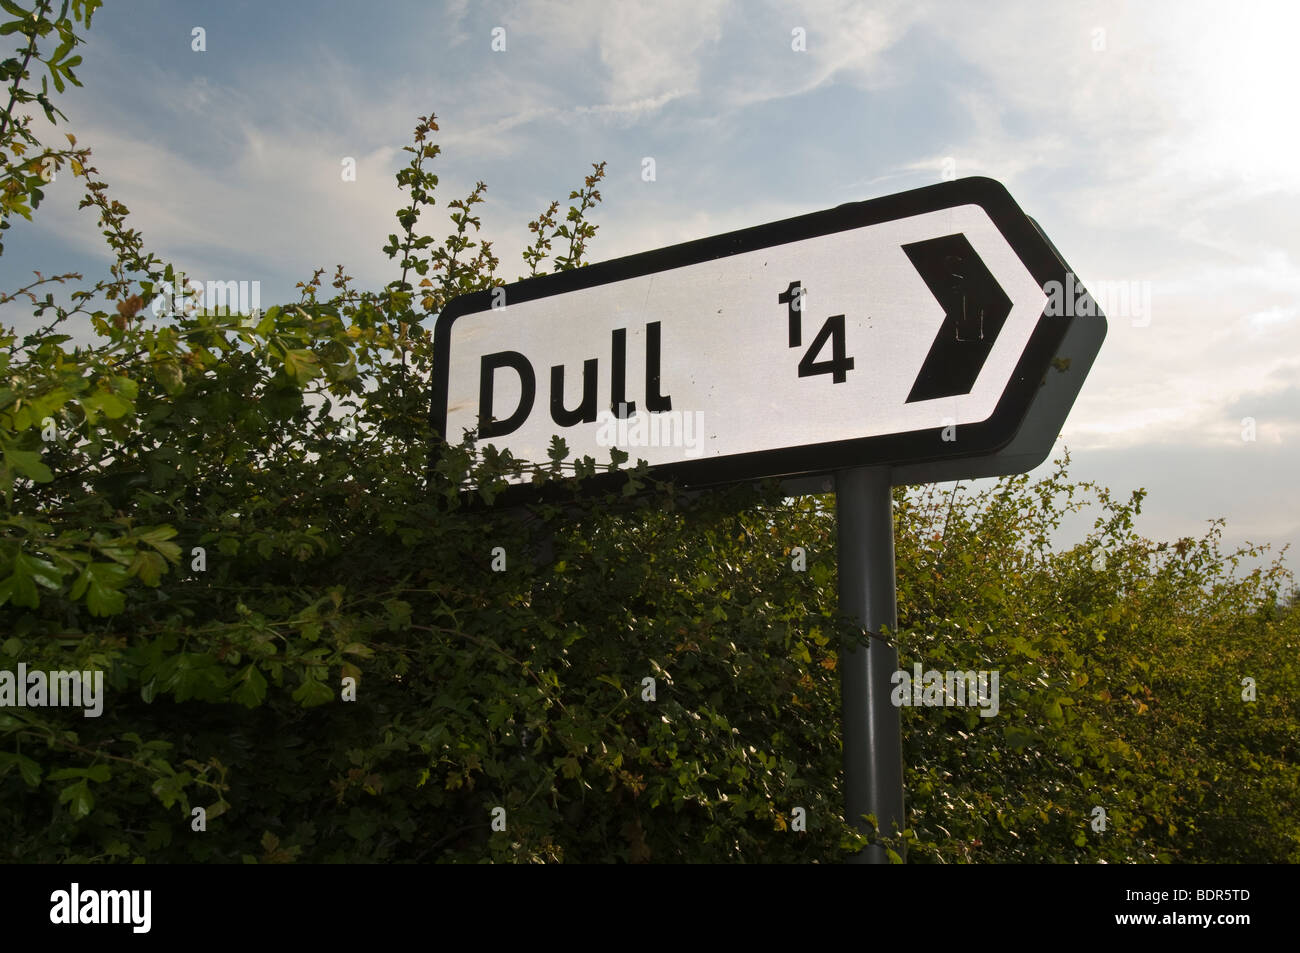 Dull village sign, Dull, Scotland, UK - Stock Image